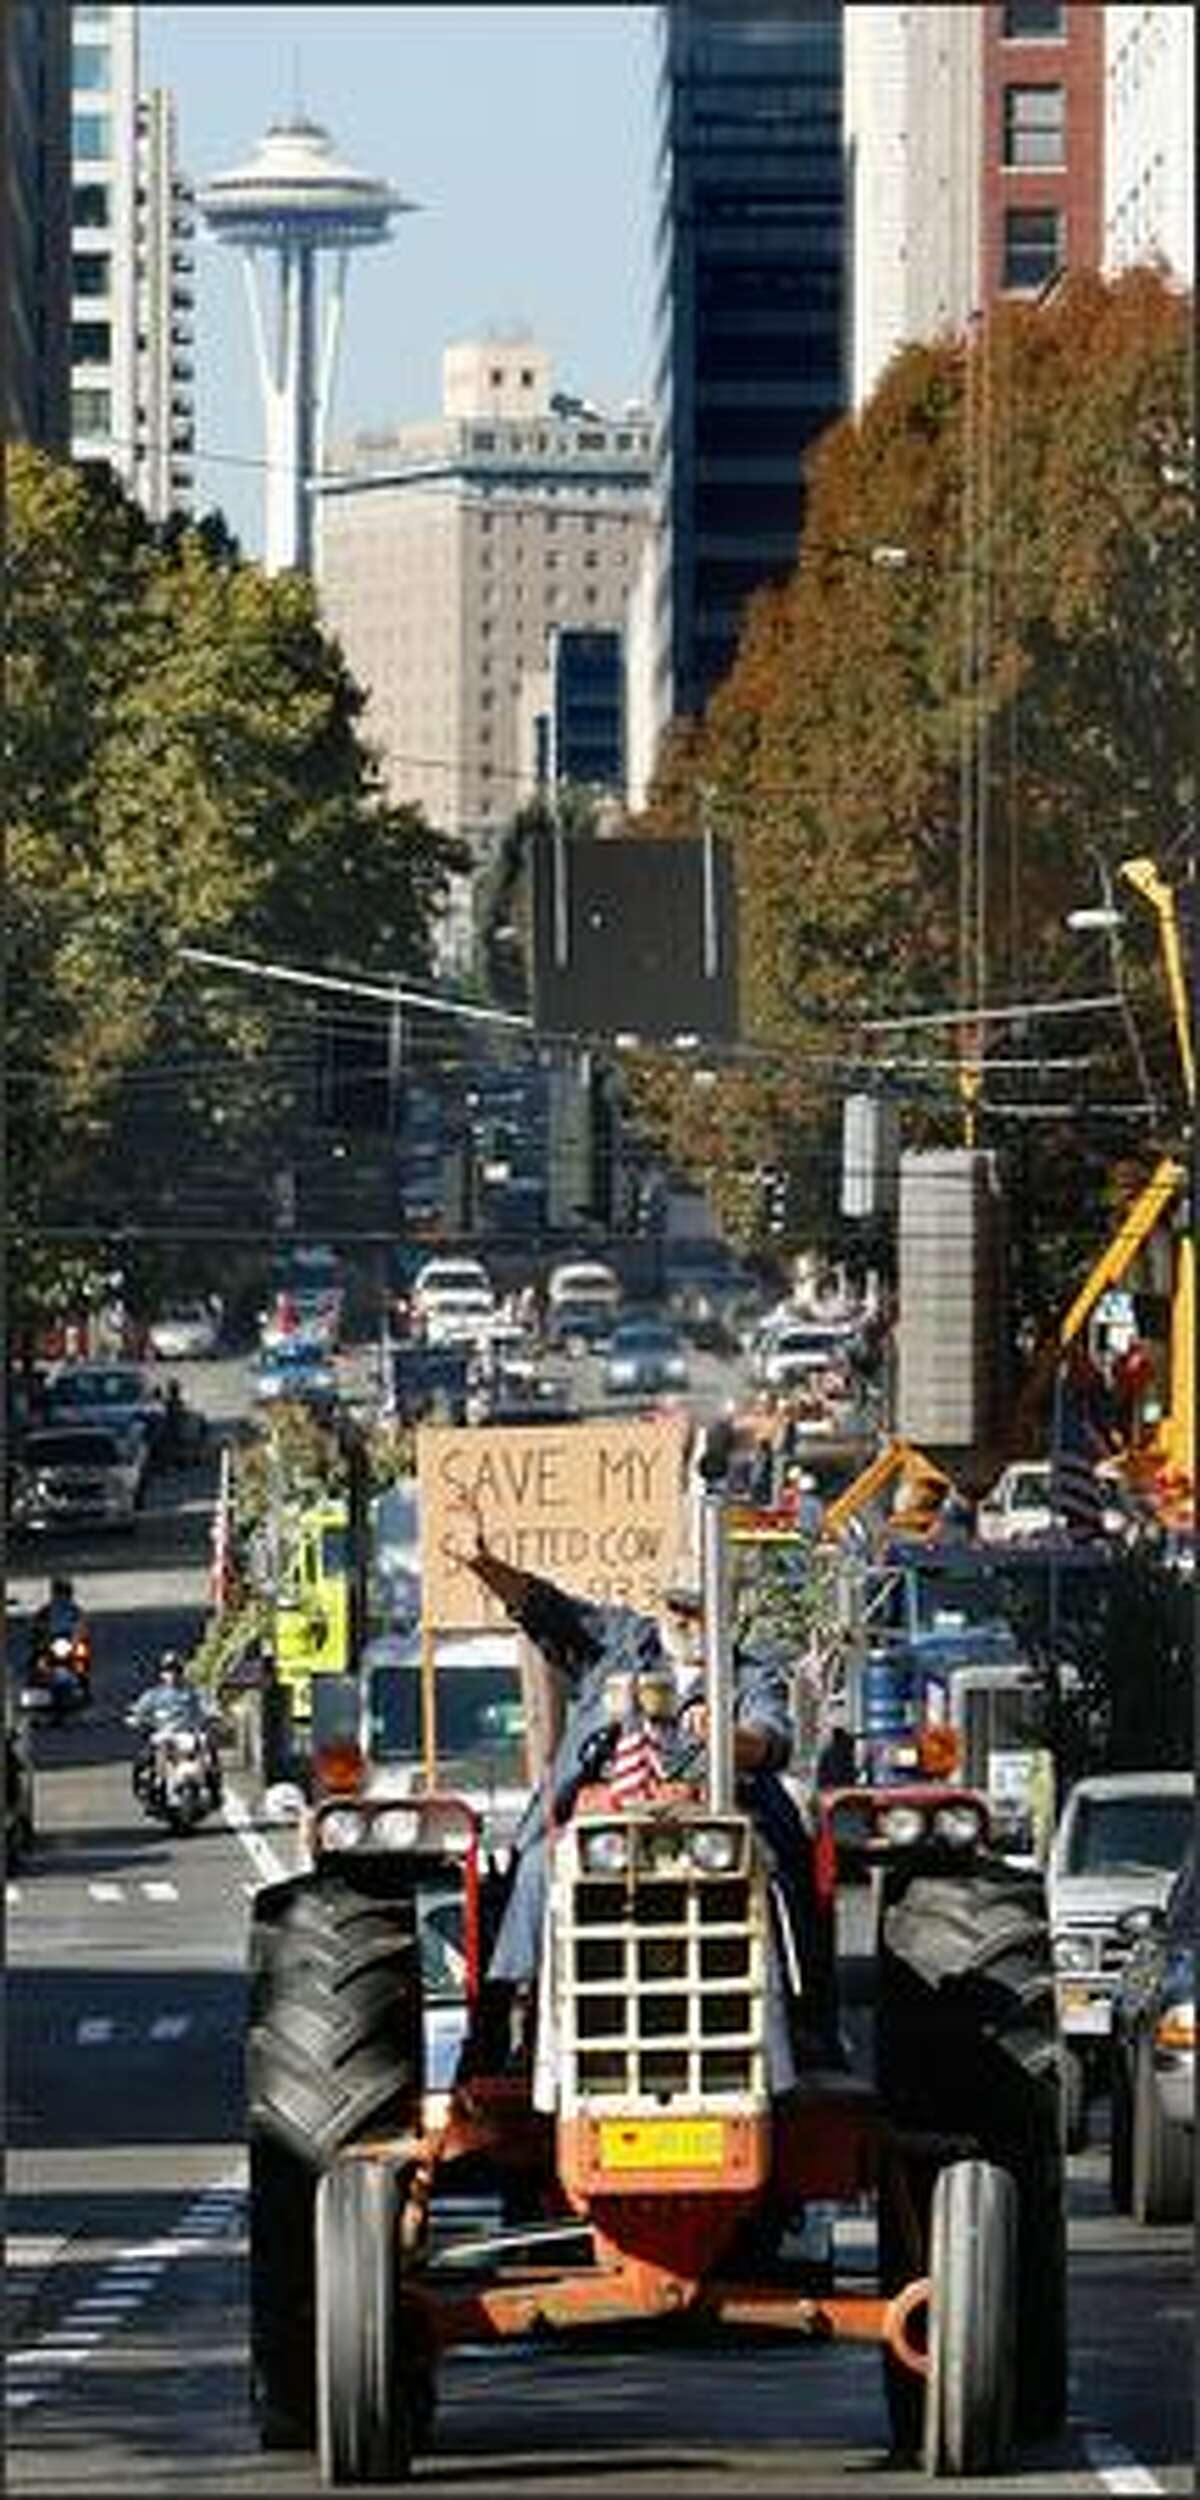 Whatcom County beef farmer Wes Kentch drives his tractor in a convoy with other I-933 supporters Thursday on Second Avenue in downtown Seattle. I-933 is a controversial land-use initiative being backed by many farm groups.